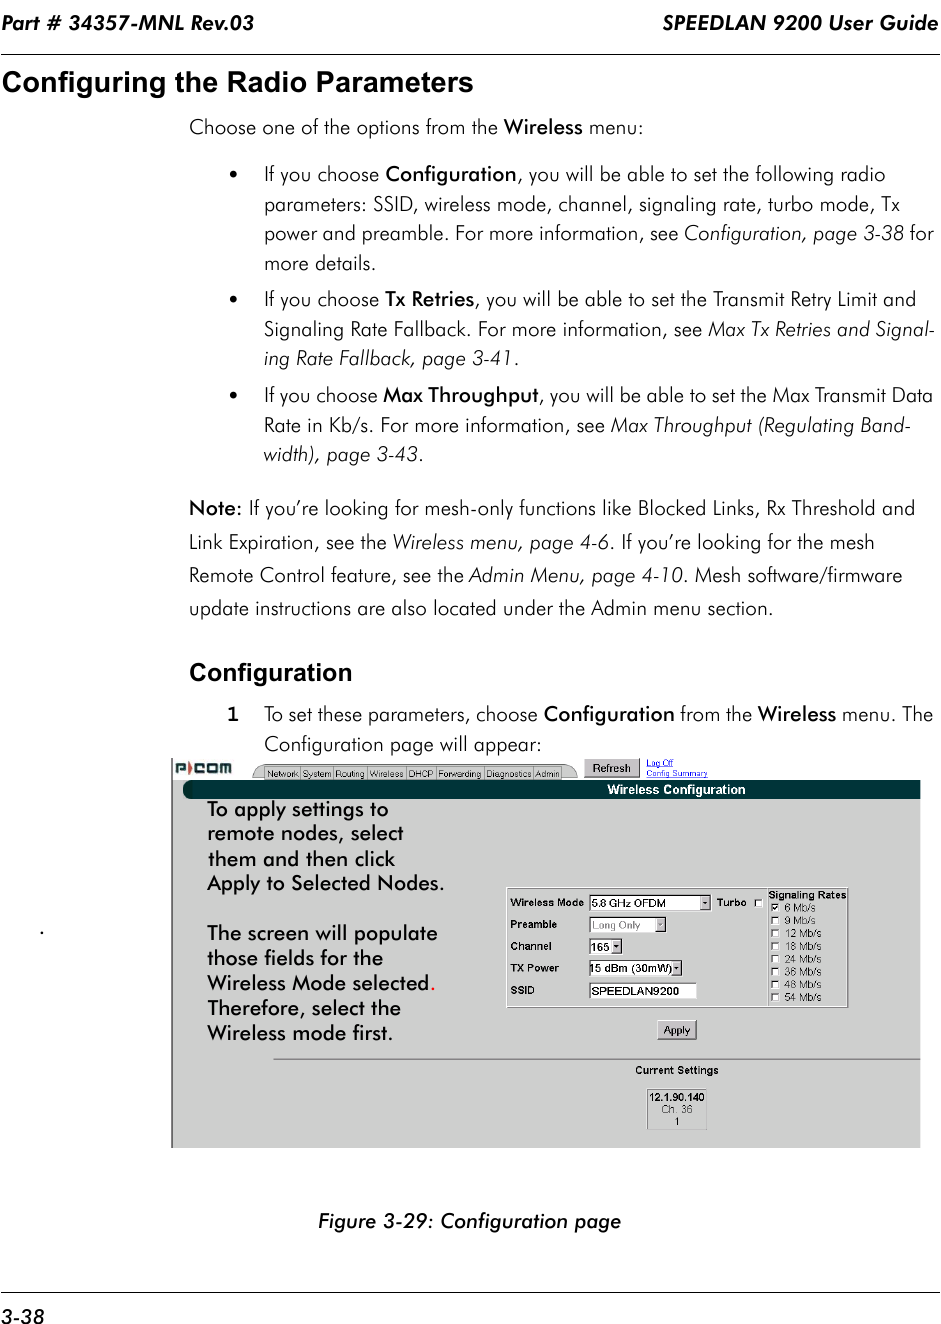 Part # 34357-MNL Rev.03                                                                   SPEEDLAN 9200 User Guide 3-38Configuring the Radio ParametersChoose one of the options from the Wireless menu:  •If you choose Configuration, you will be able to set the following radio parameters: SSID, wireless mode, channel, signaling rate, turbo mode, Tx power and preamble. For more information, see Configuration, page 3-38 for more details.•If you choose Tx Retries, you will be able to set the Transmit Retry Limit and Signaling Rate Fallback. For more information, see Max Tx Retries and Signal-ing Rate Fallback, page 3-41.•If you choose Max Throughput, you will be able to set the Max Transmit Data Rate in Kb/s. For more information, see Max Throughput (Regulating Band-width), page 3-43.Note: If you're looking for mesh-only functions like Blocked Links, Rx Threshold and Link Expiration, see the Wireless menu, page 4-6. If you're looking for the mesh Remote Control feature, see the Admin Menu, page 4-10. Mesh software/firmware update instructions are also located under the Admin menu section. Configuration 1To set these parameters, choose Configuration from the Wireless menu. The Configuration page will appear:Figure 3-29: Configuration page. To apply settings to remote nodes, selectthem and then clickApply to Selected Nodes. The screen will populatethose fields for the Wireless Mode selected. Therefore, select theWireless mode first.